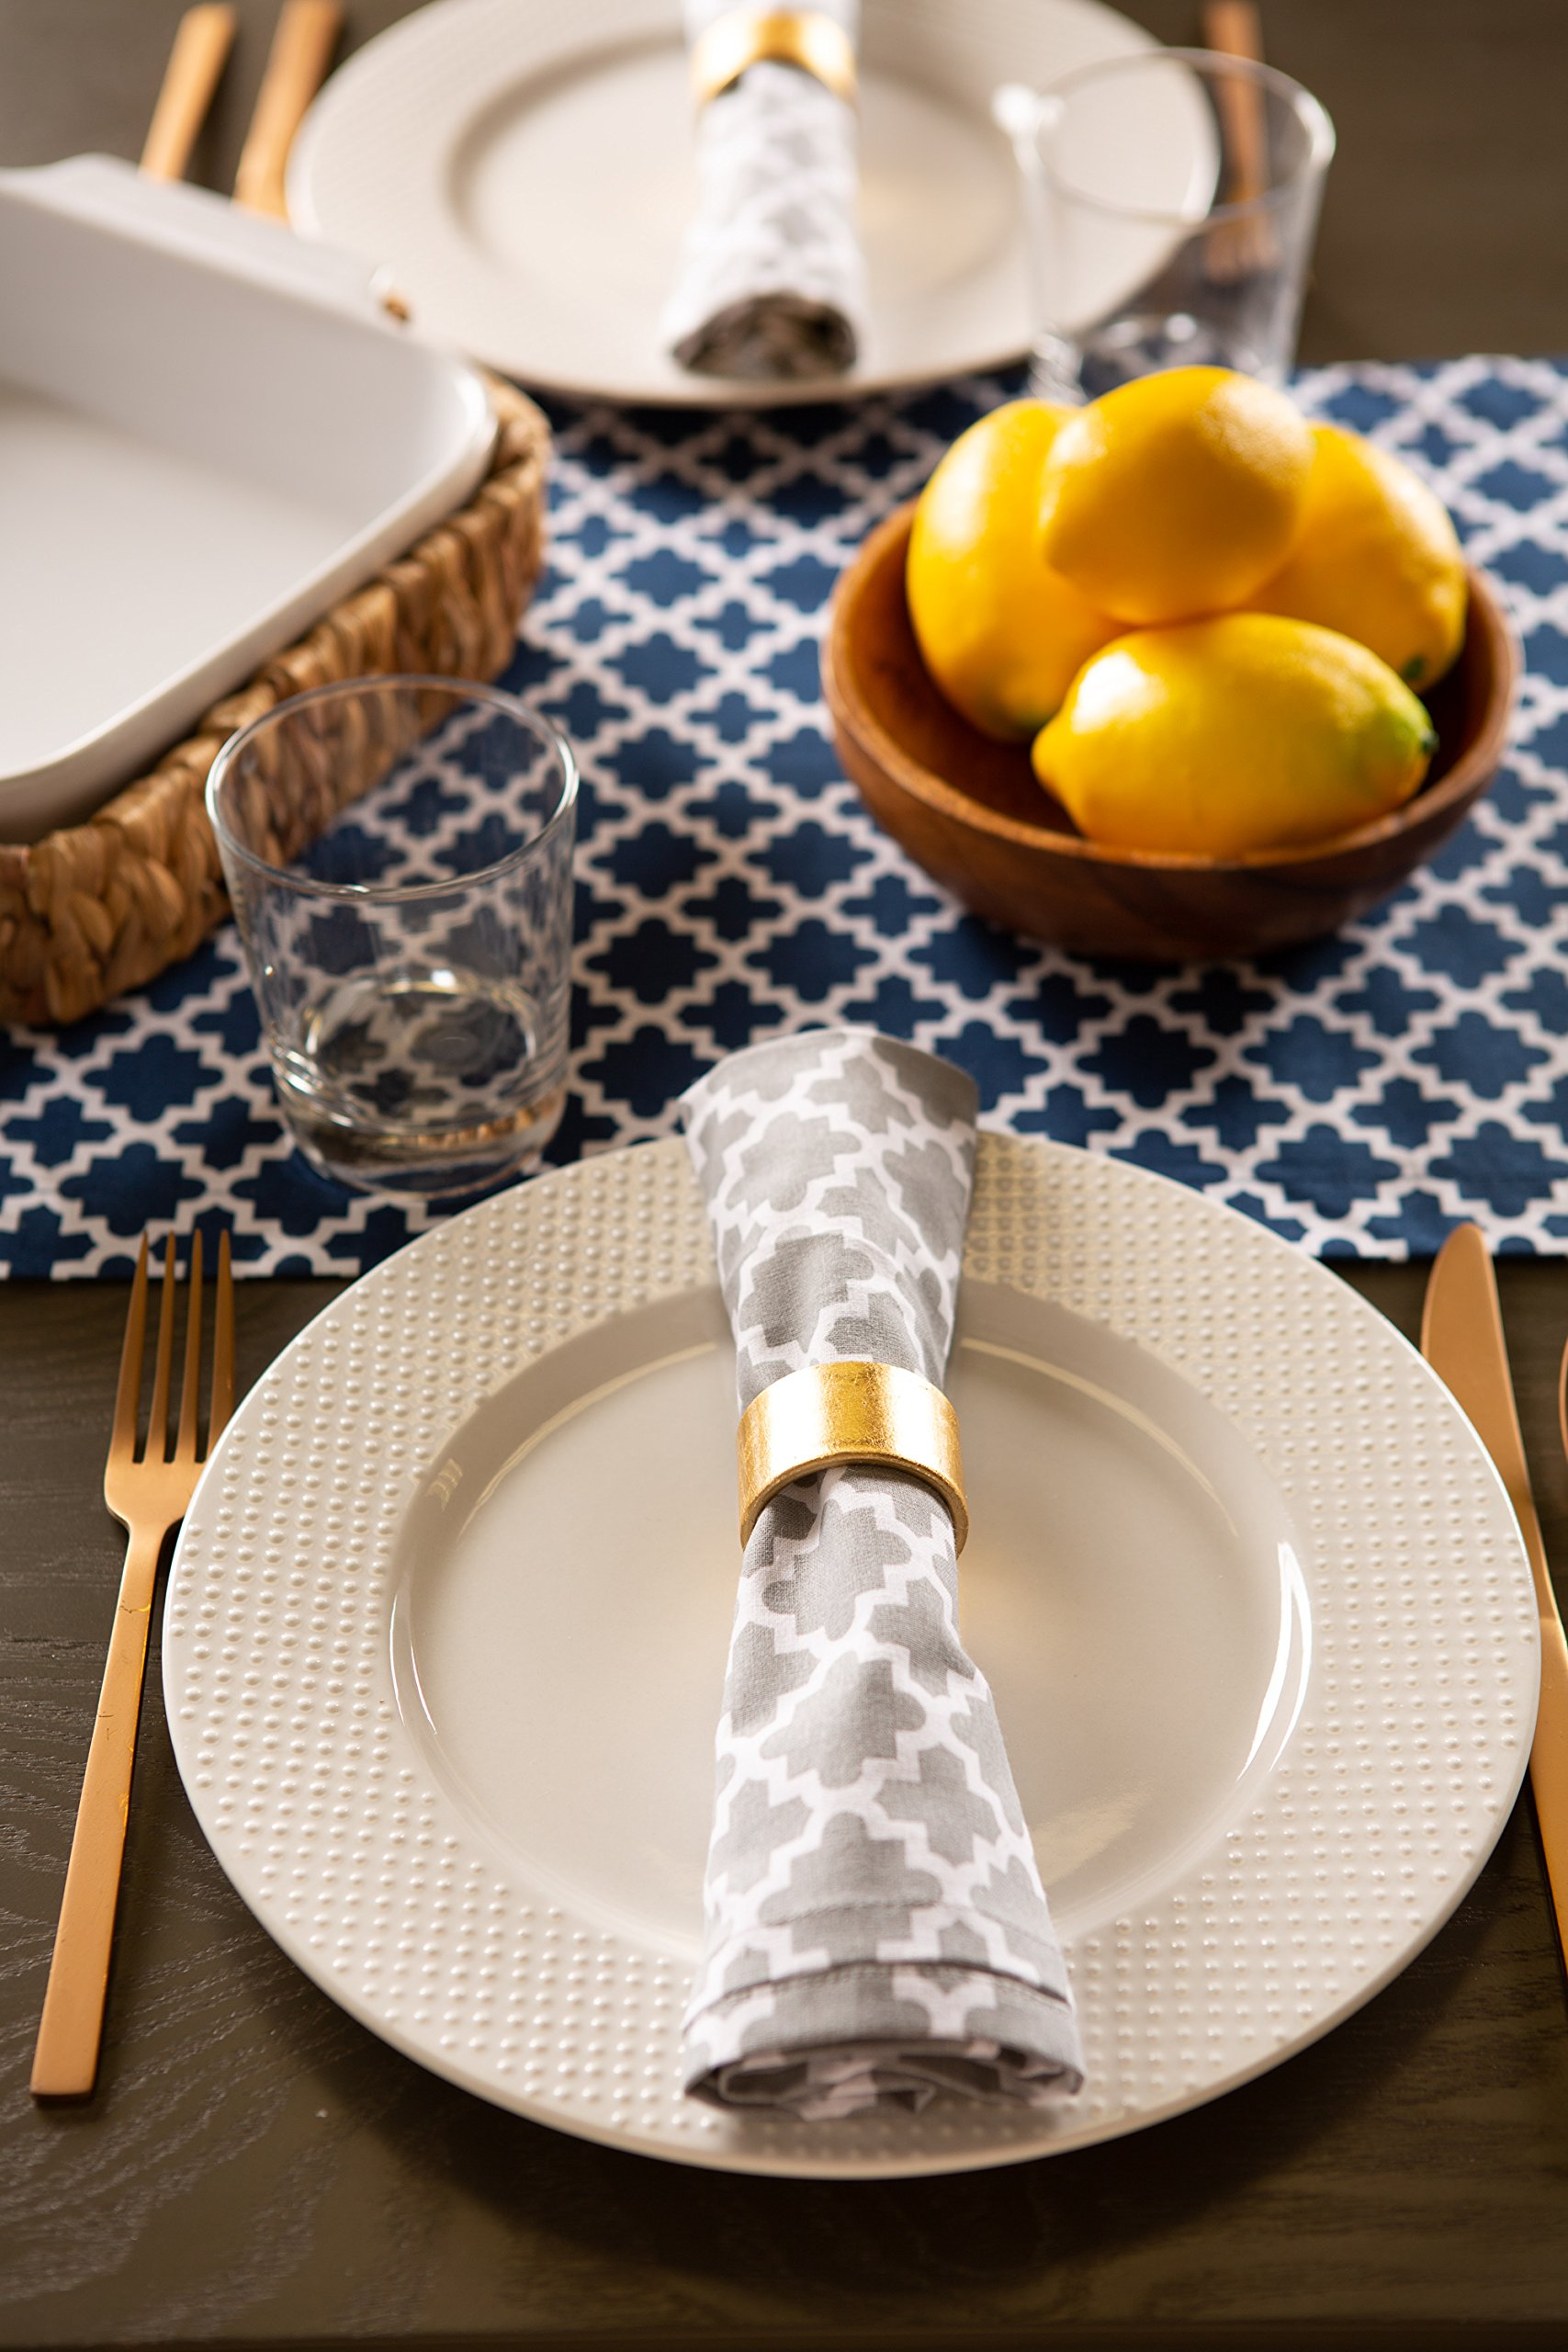 DII Lattice Cotton Table Runner for Dining Room, Foyer Table, Summer Parties and Everyday Use - 14x108'', Nautical Blue and White by DII (Image #5)